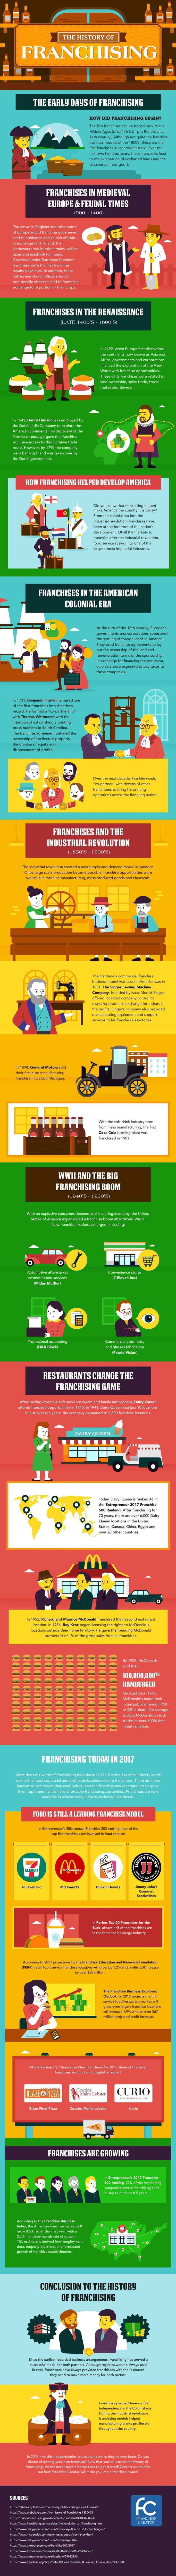 The History of Franchising